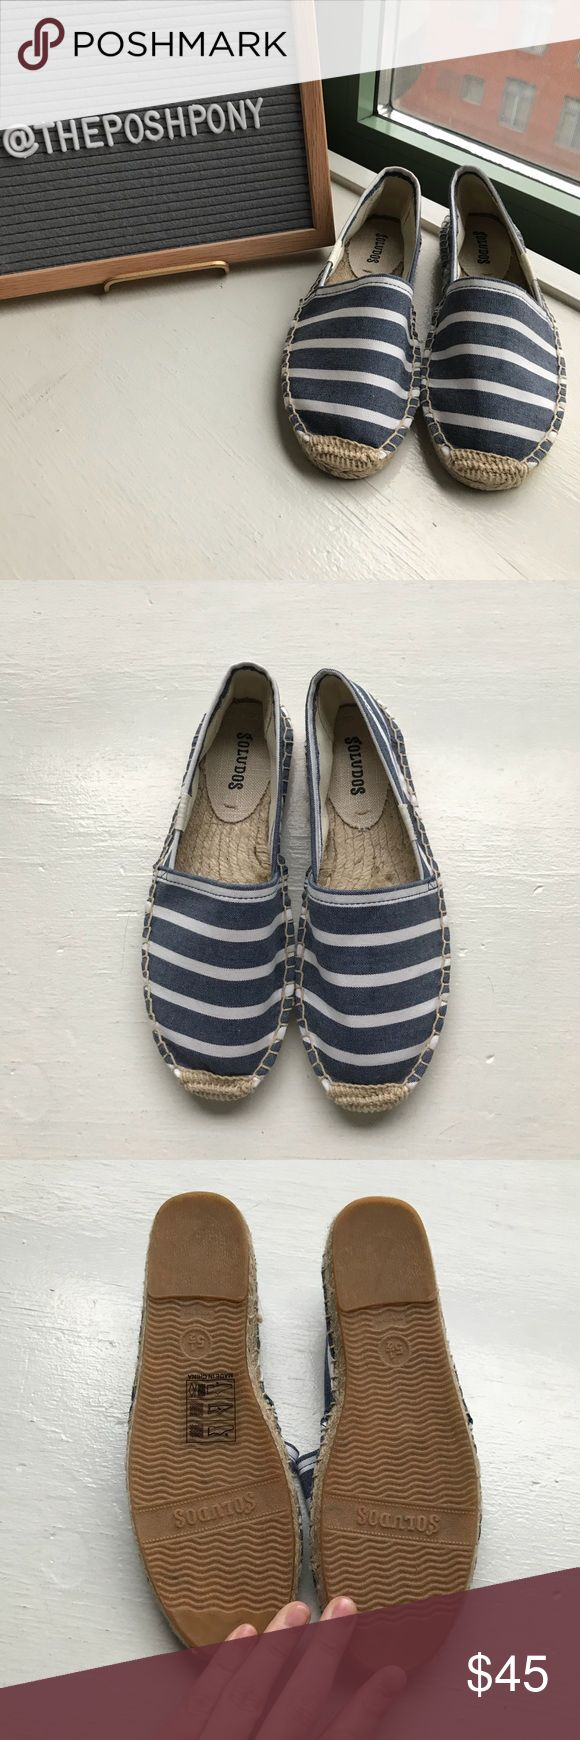 NWOT Soludos Blue and White Stripped Espadrilles New without tags, never worn Soludos Smoking Slipper Espadrilles Shoes in Navy and white stripe, size 5.5. Perfect flat shoe for spring and summer, beautiful comfortable shoes with classic denim navy and white print and natural trim. Never worn, perfect condition.  Box is not included.  No trades. Offers and bundles considered.  Please refer to the size chart and reviews on brand's website for fit information, I do not know if these will fit…